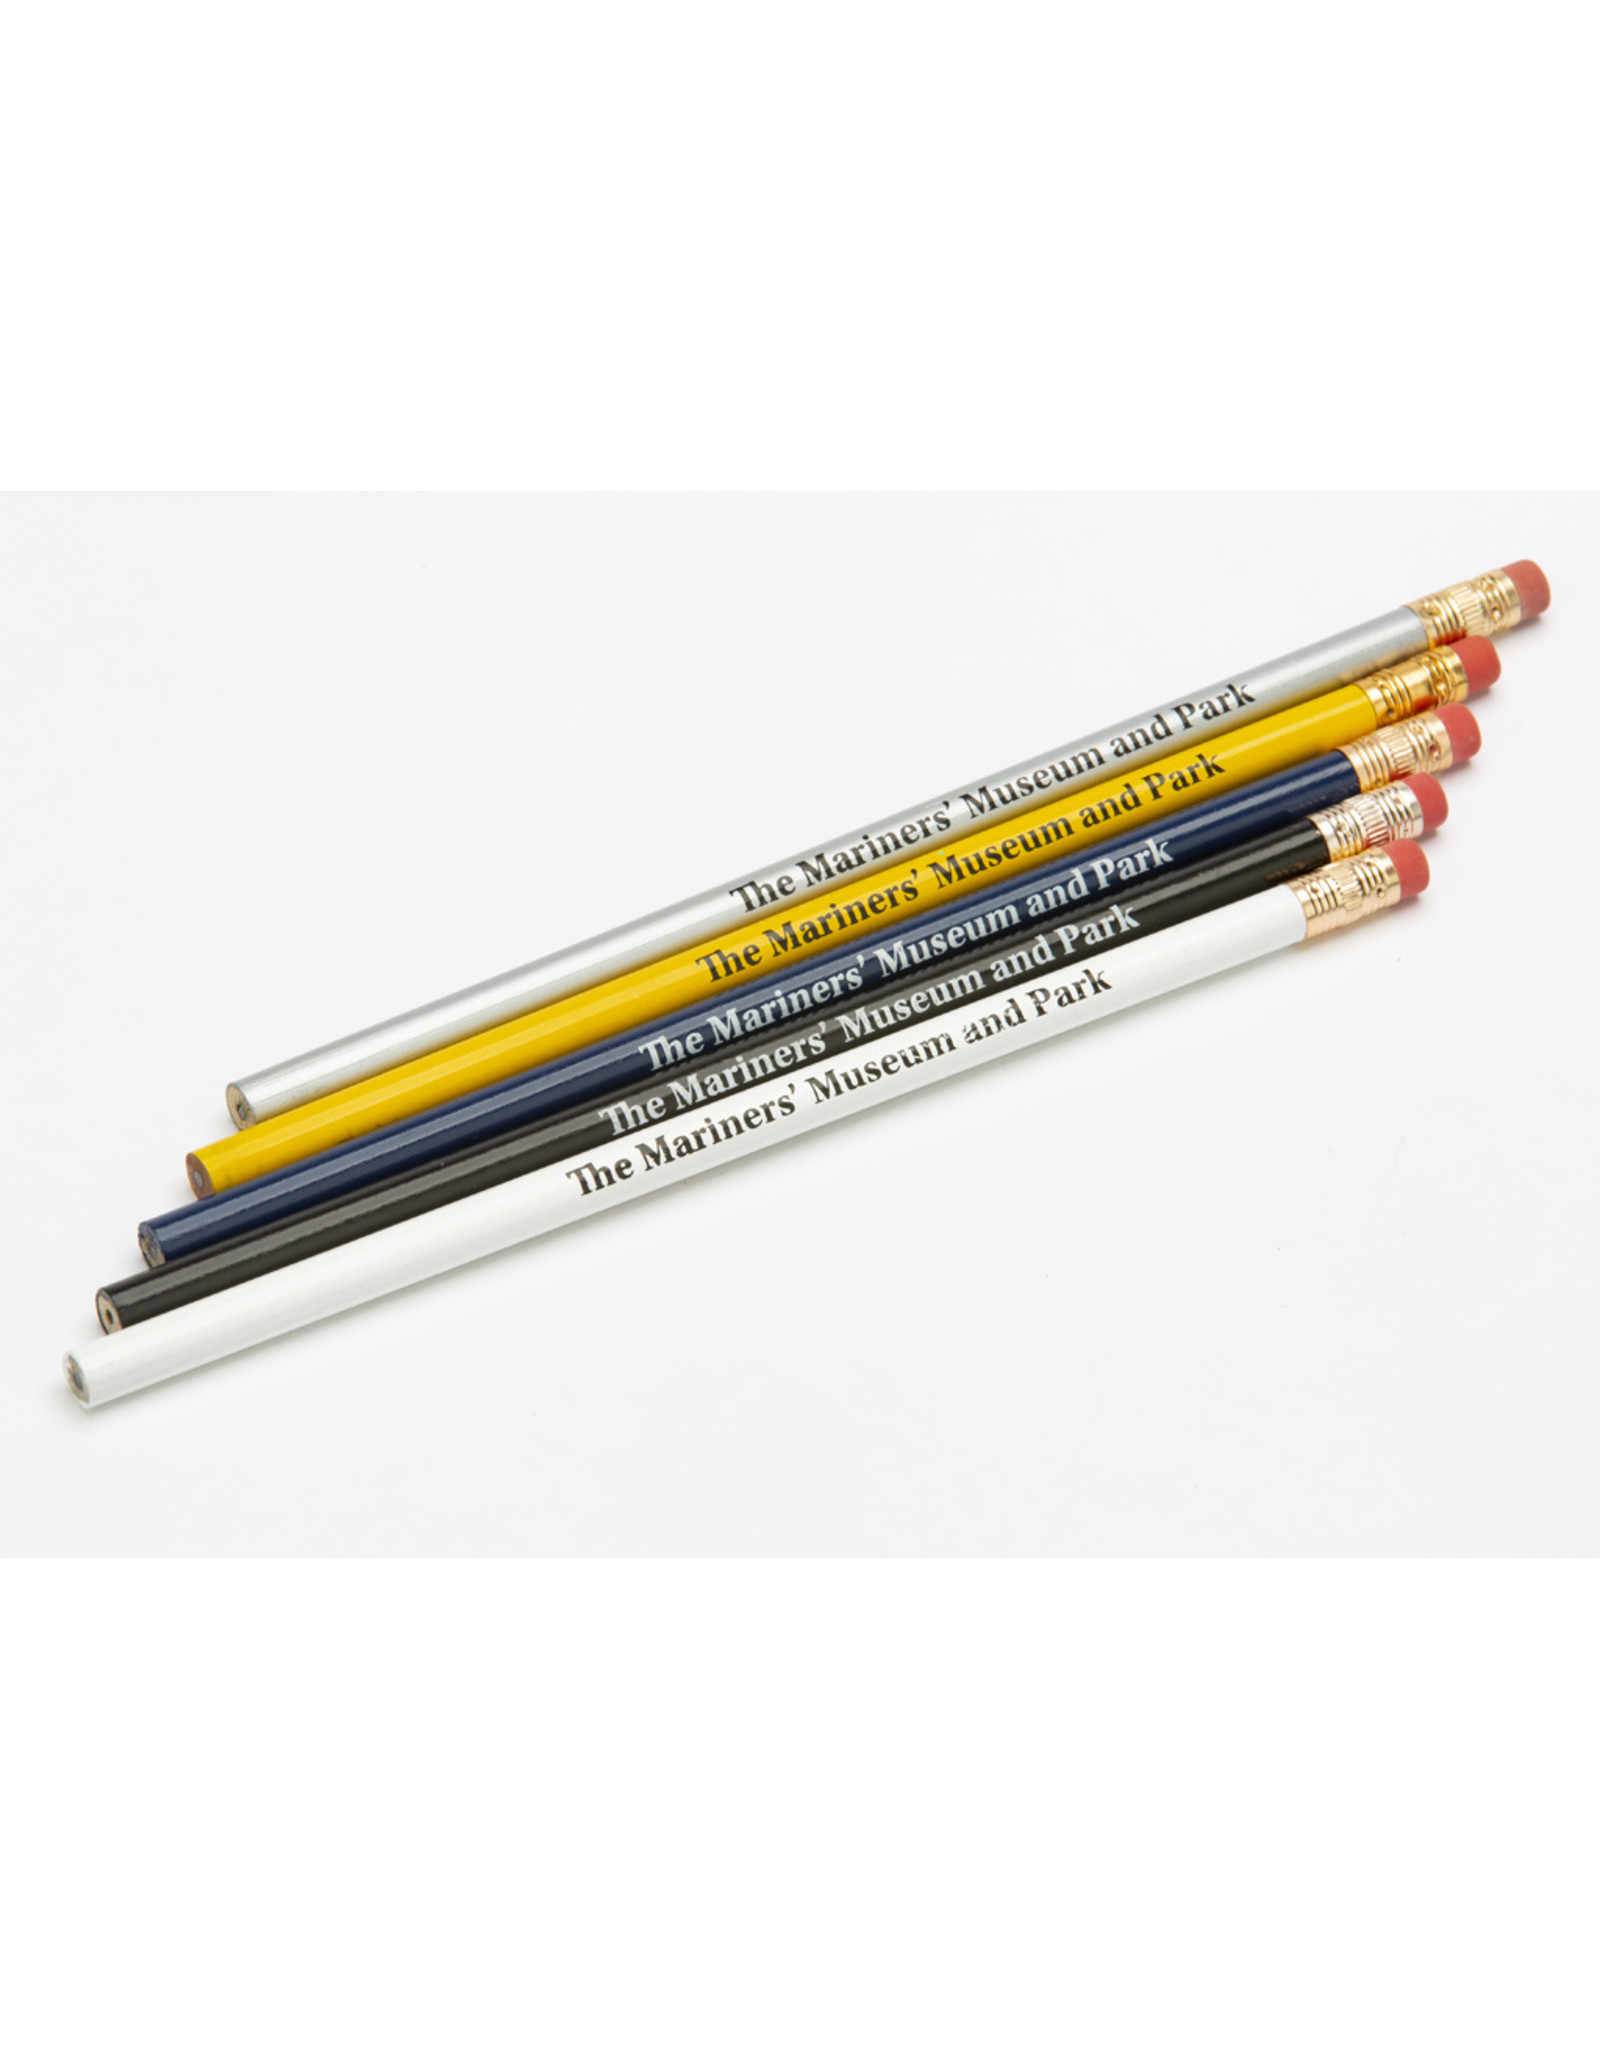 The Mariners' Museum and Park Pencil